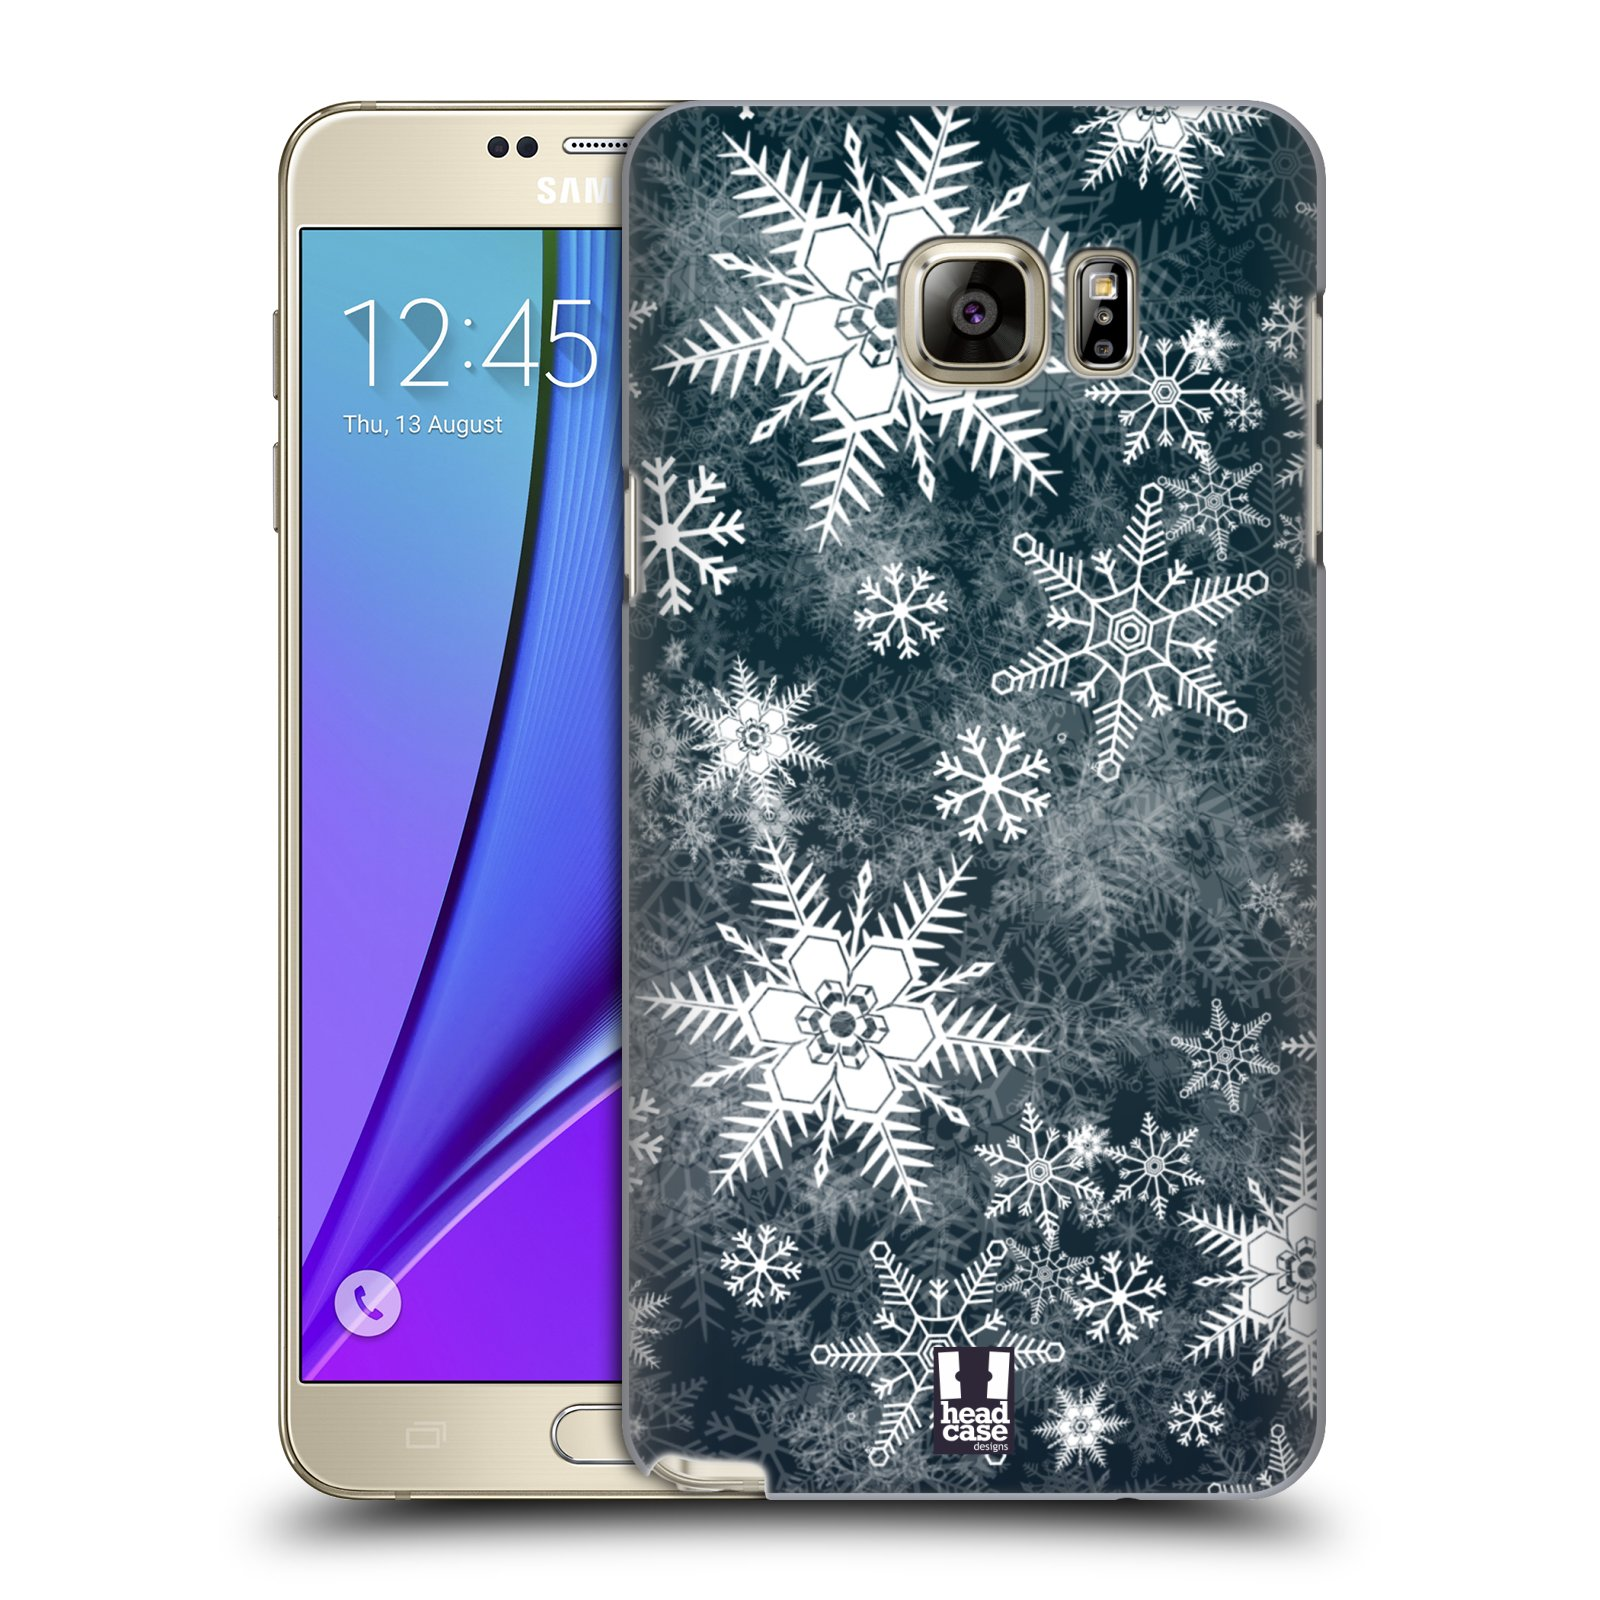 HEAD CASE DESIGNS WINTER PRINTS HARD BACK CASE FOR SAMSUNG GALAXY NOTE 5